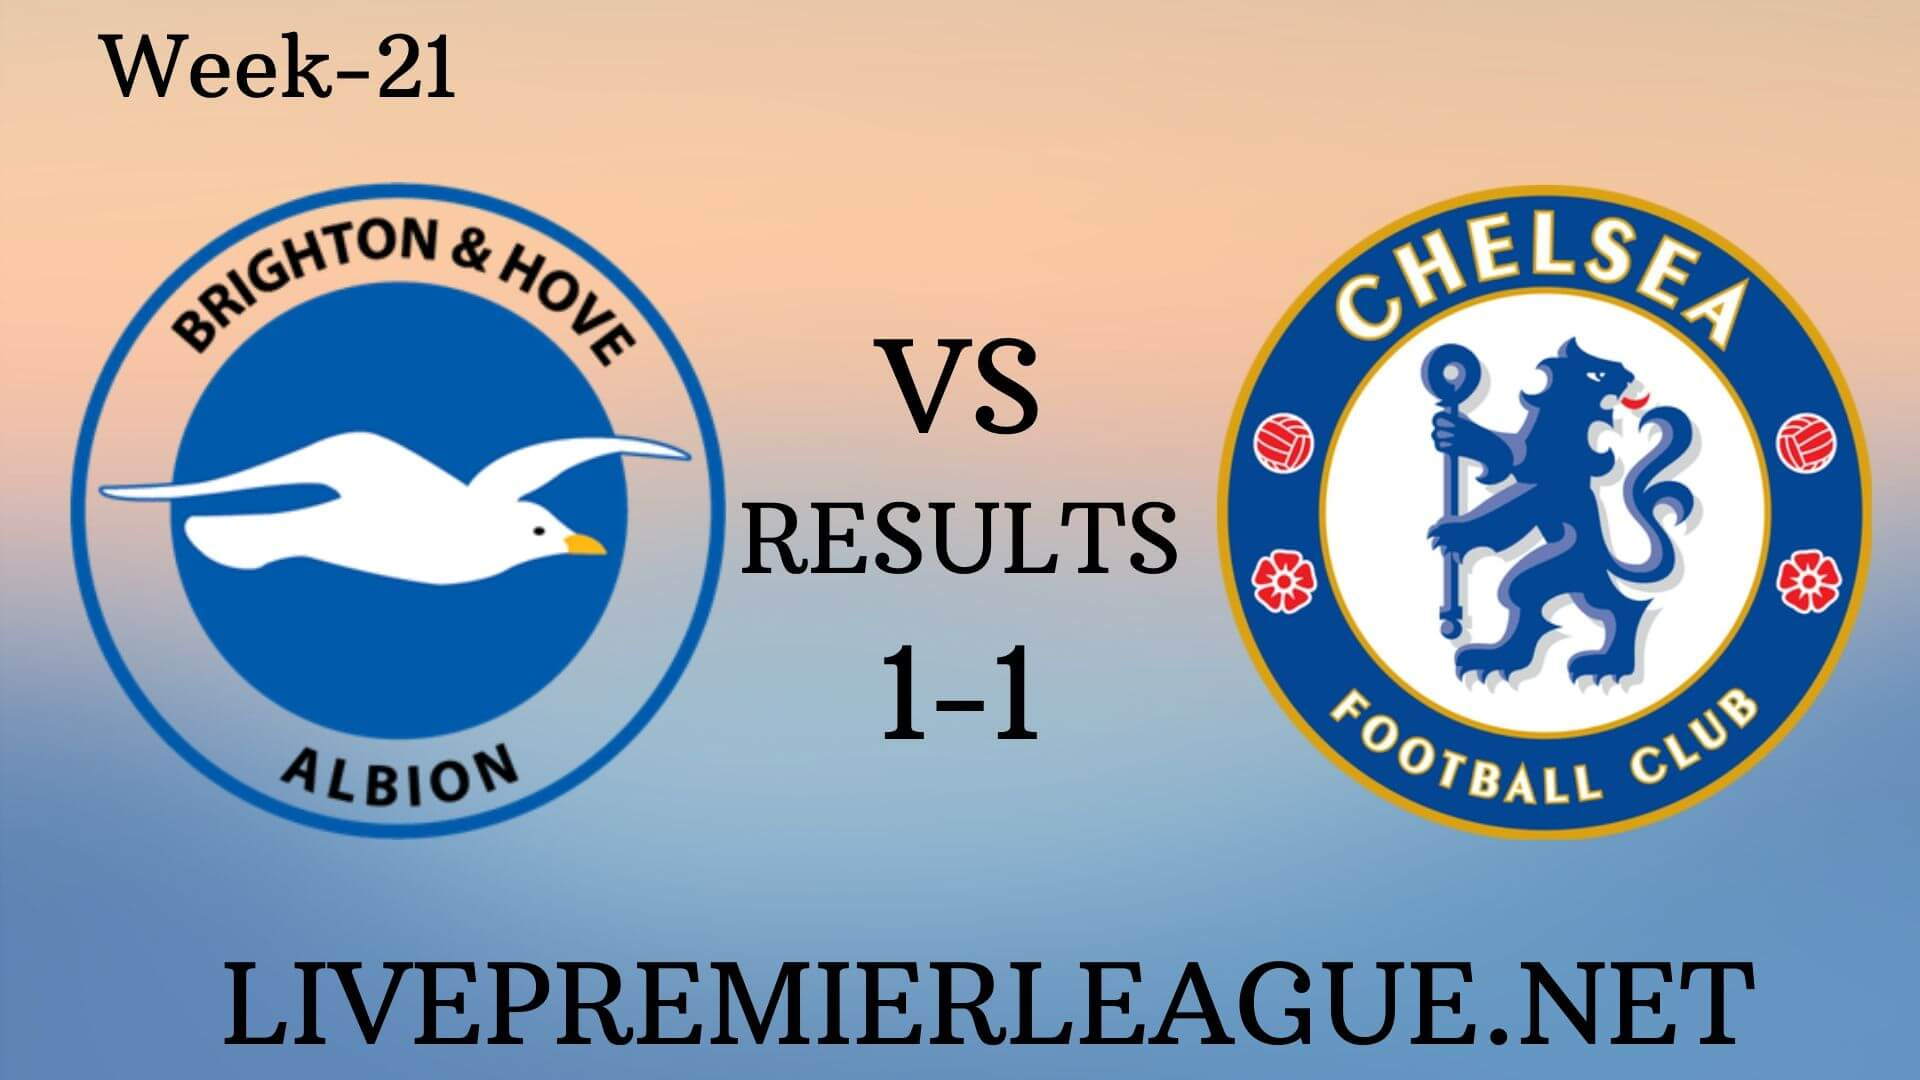 Brighton and Hove Albion Vs Chelsea | Week 21 Results 2019